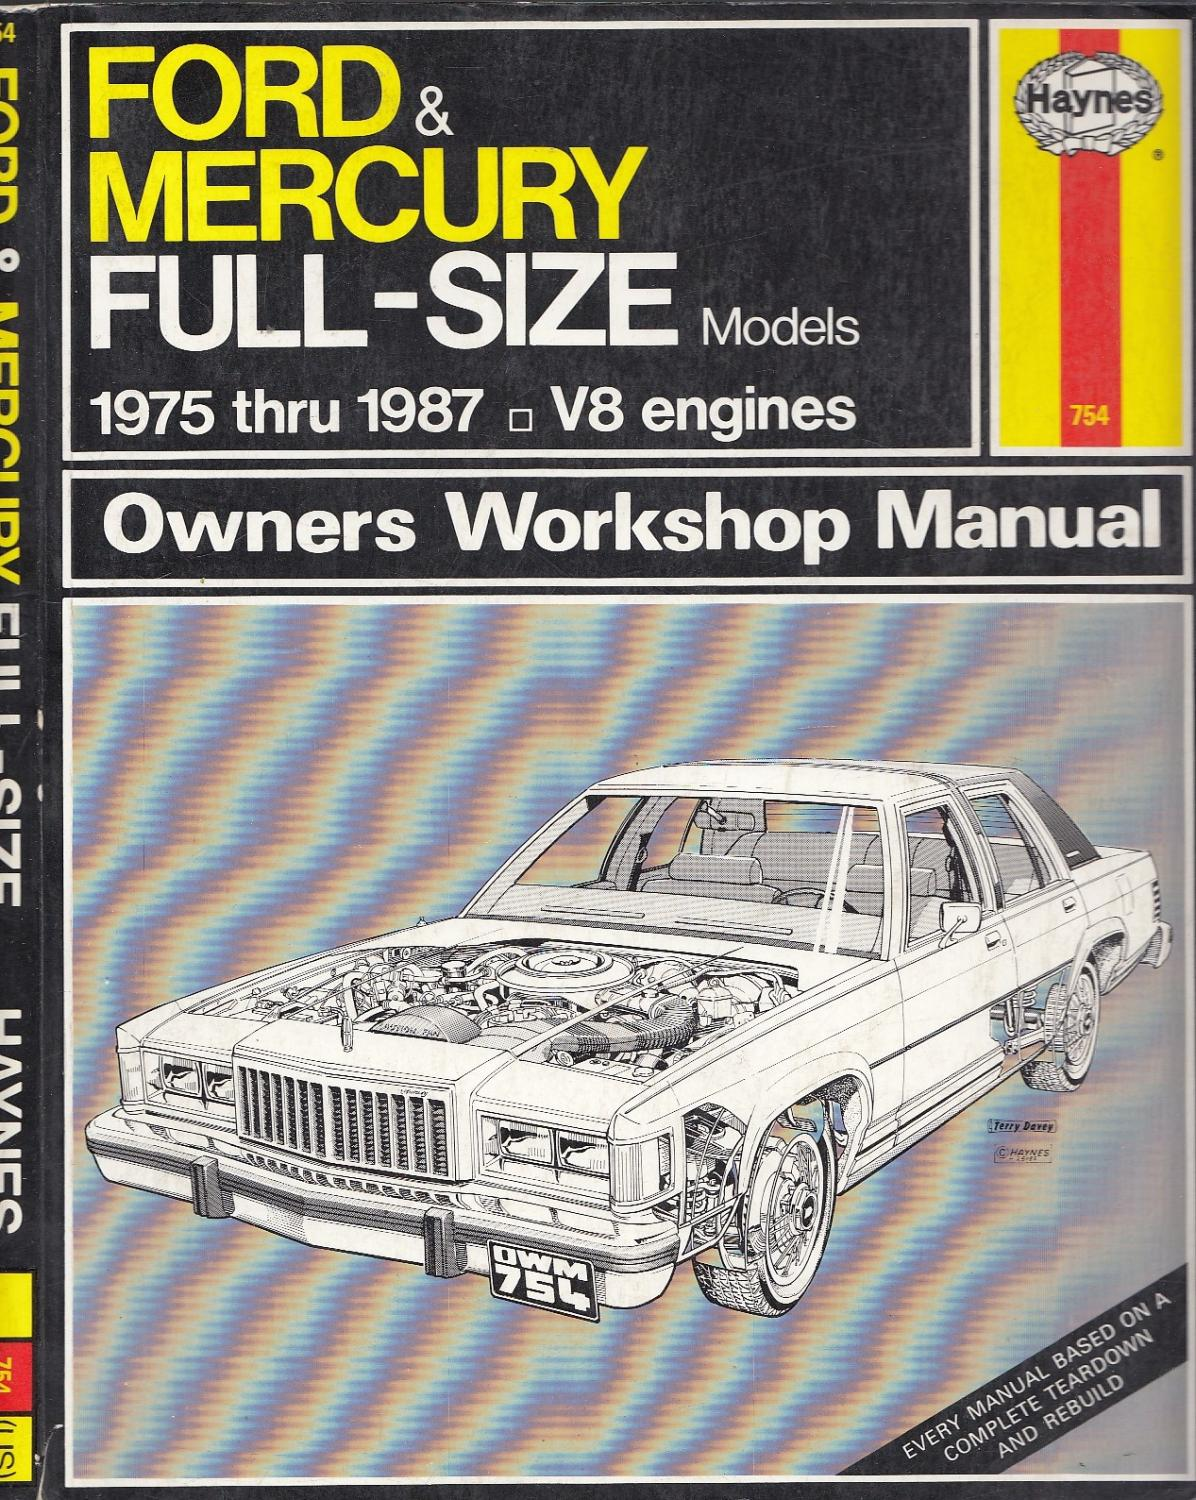 Ford & Mercury Full Size Sedans '75 '87 (Haynes Repair Manuals # 12N2-754 (US)) - Haynes, John; MUir, Chaun